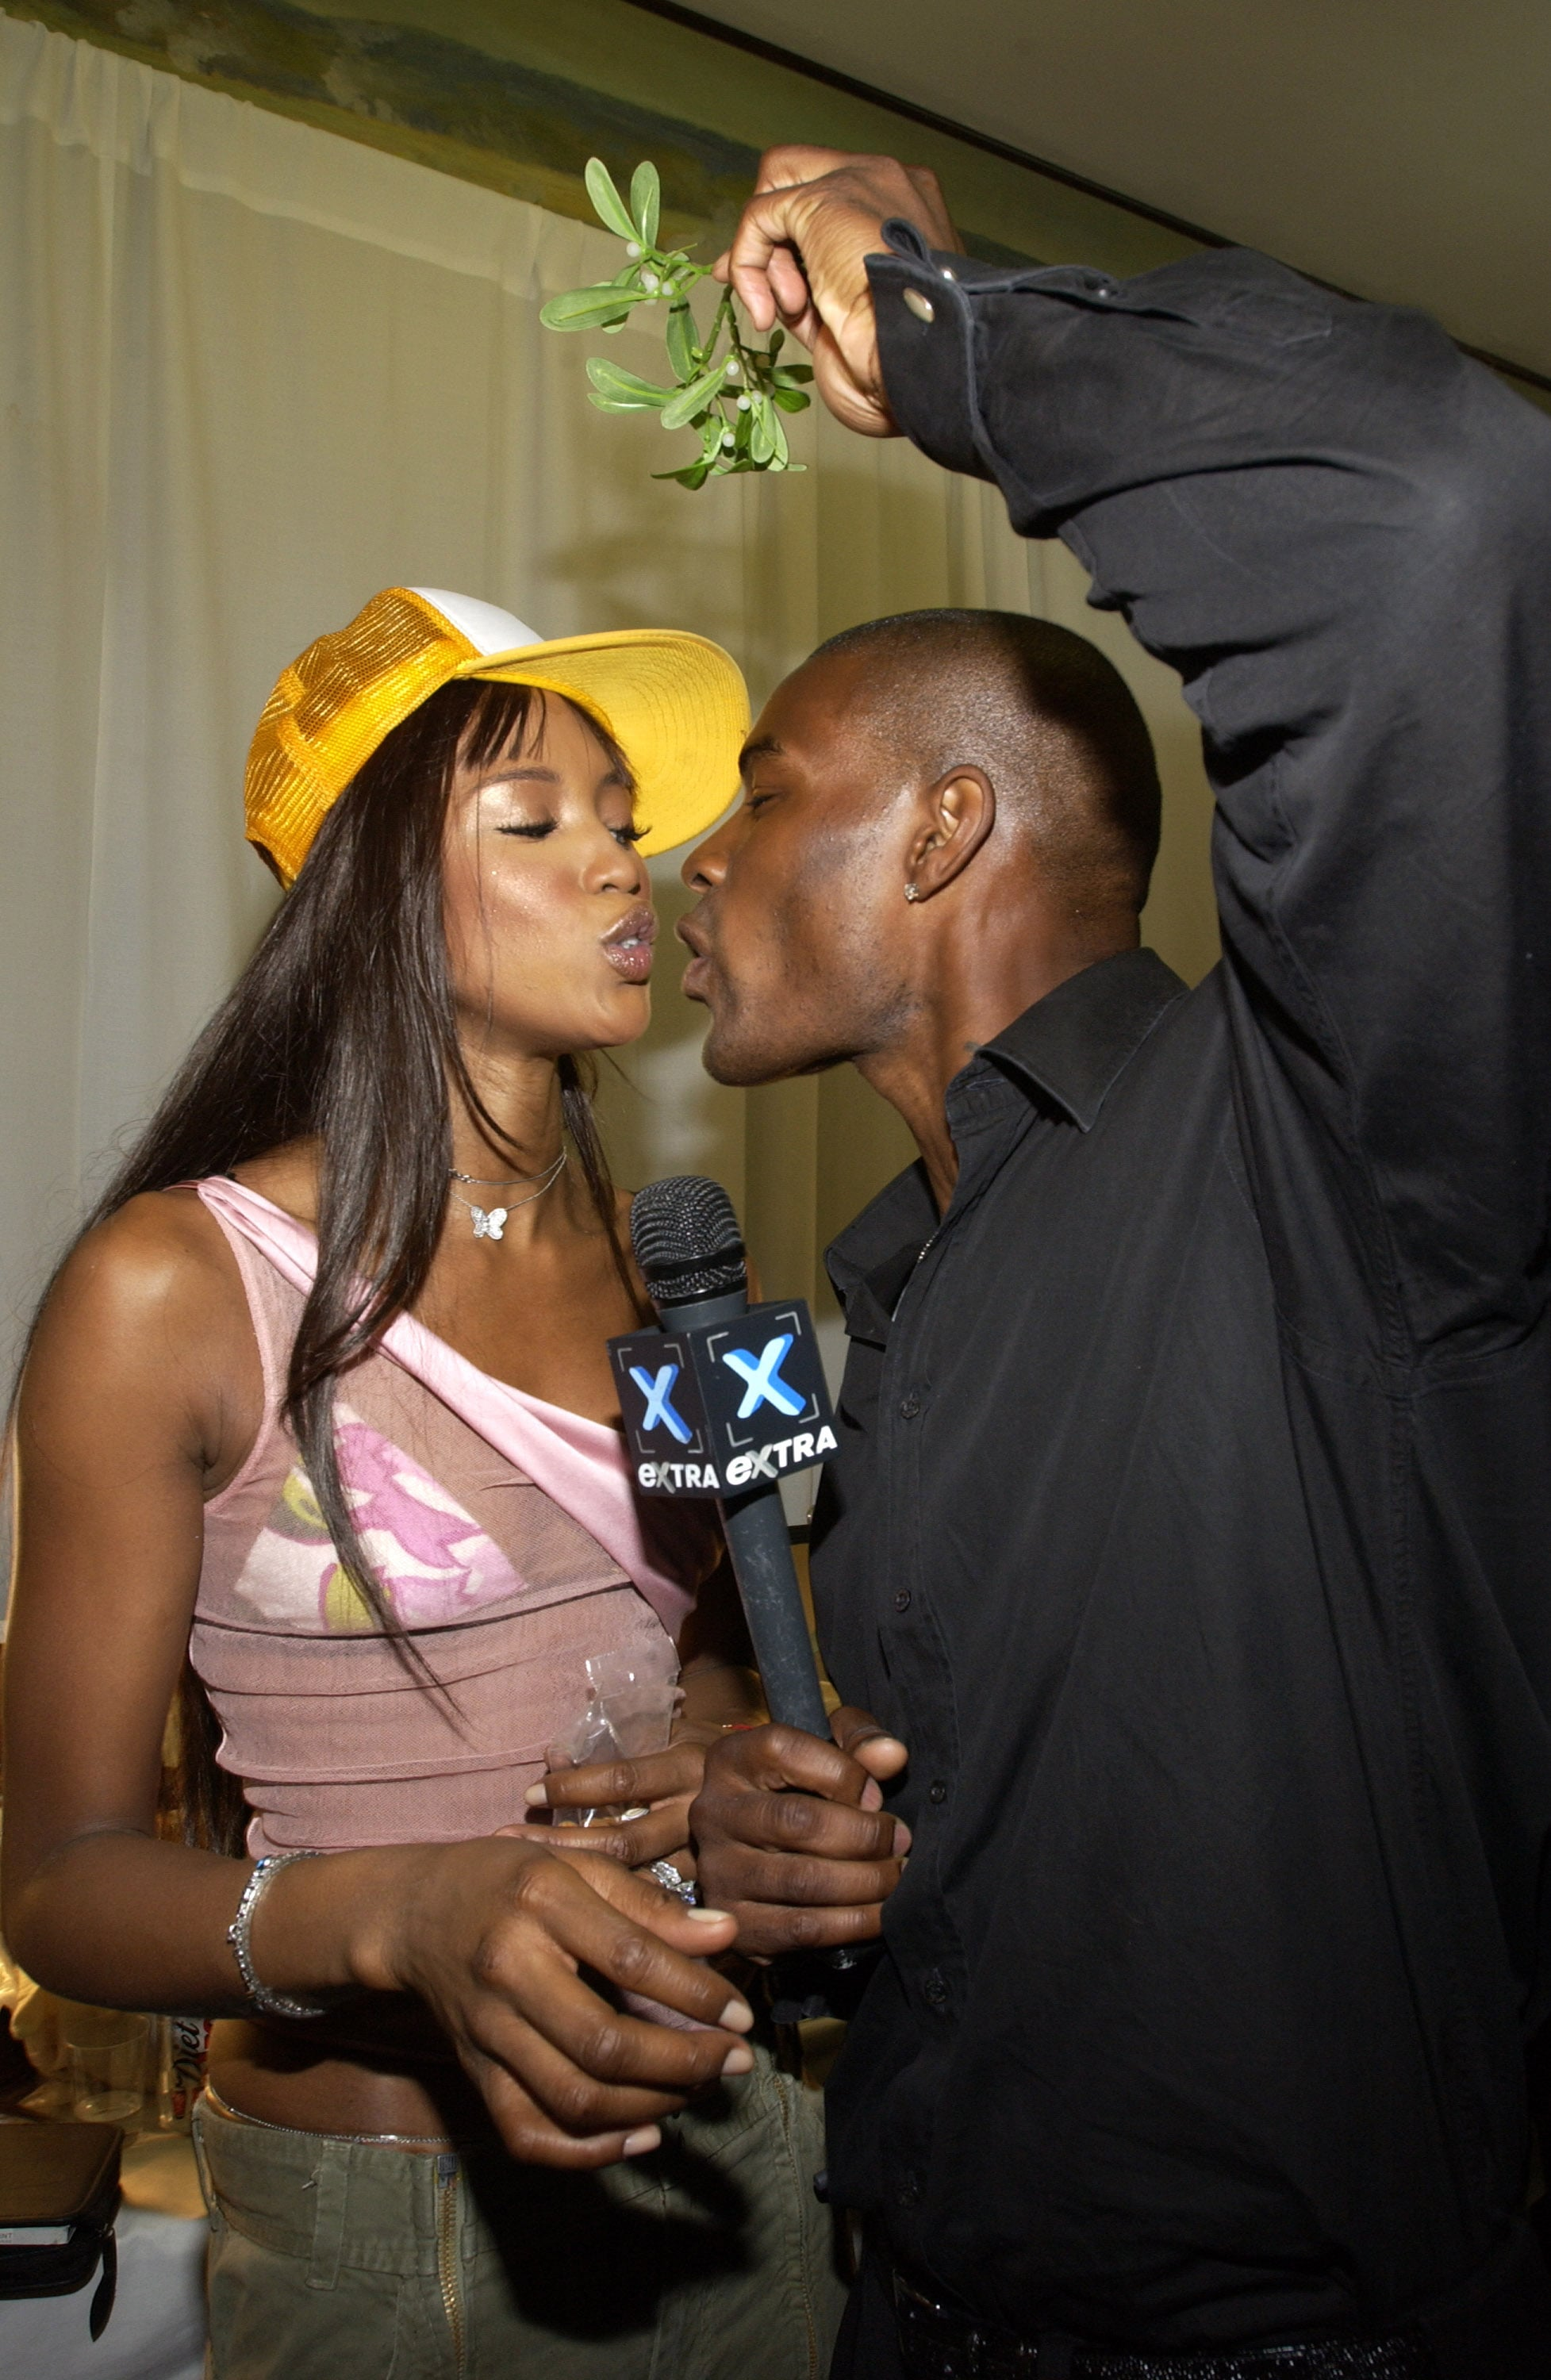 Things got romantic for Naomi Campbell and Tyson Beckford backstage in 2002.